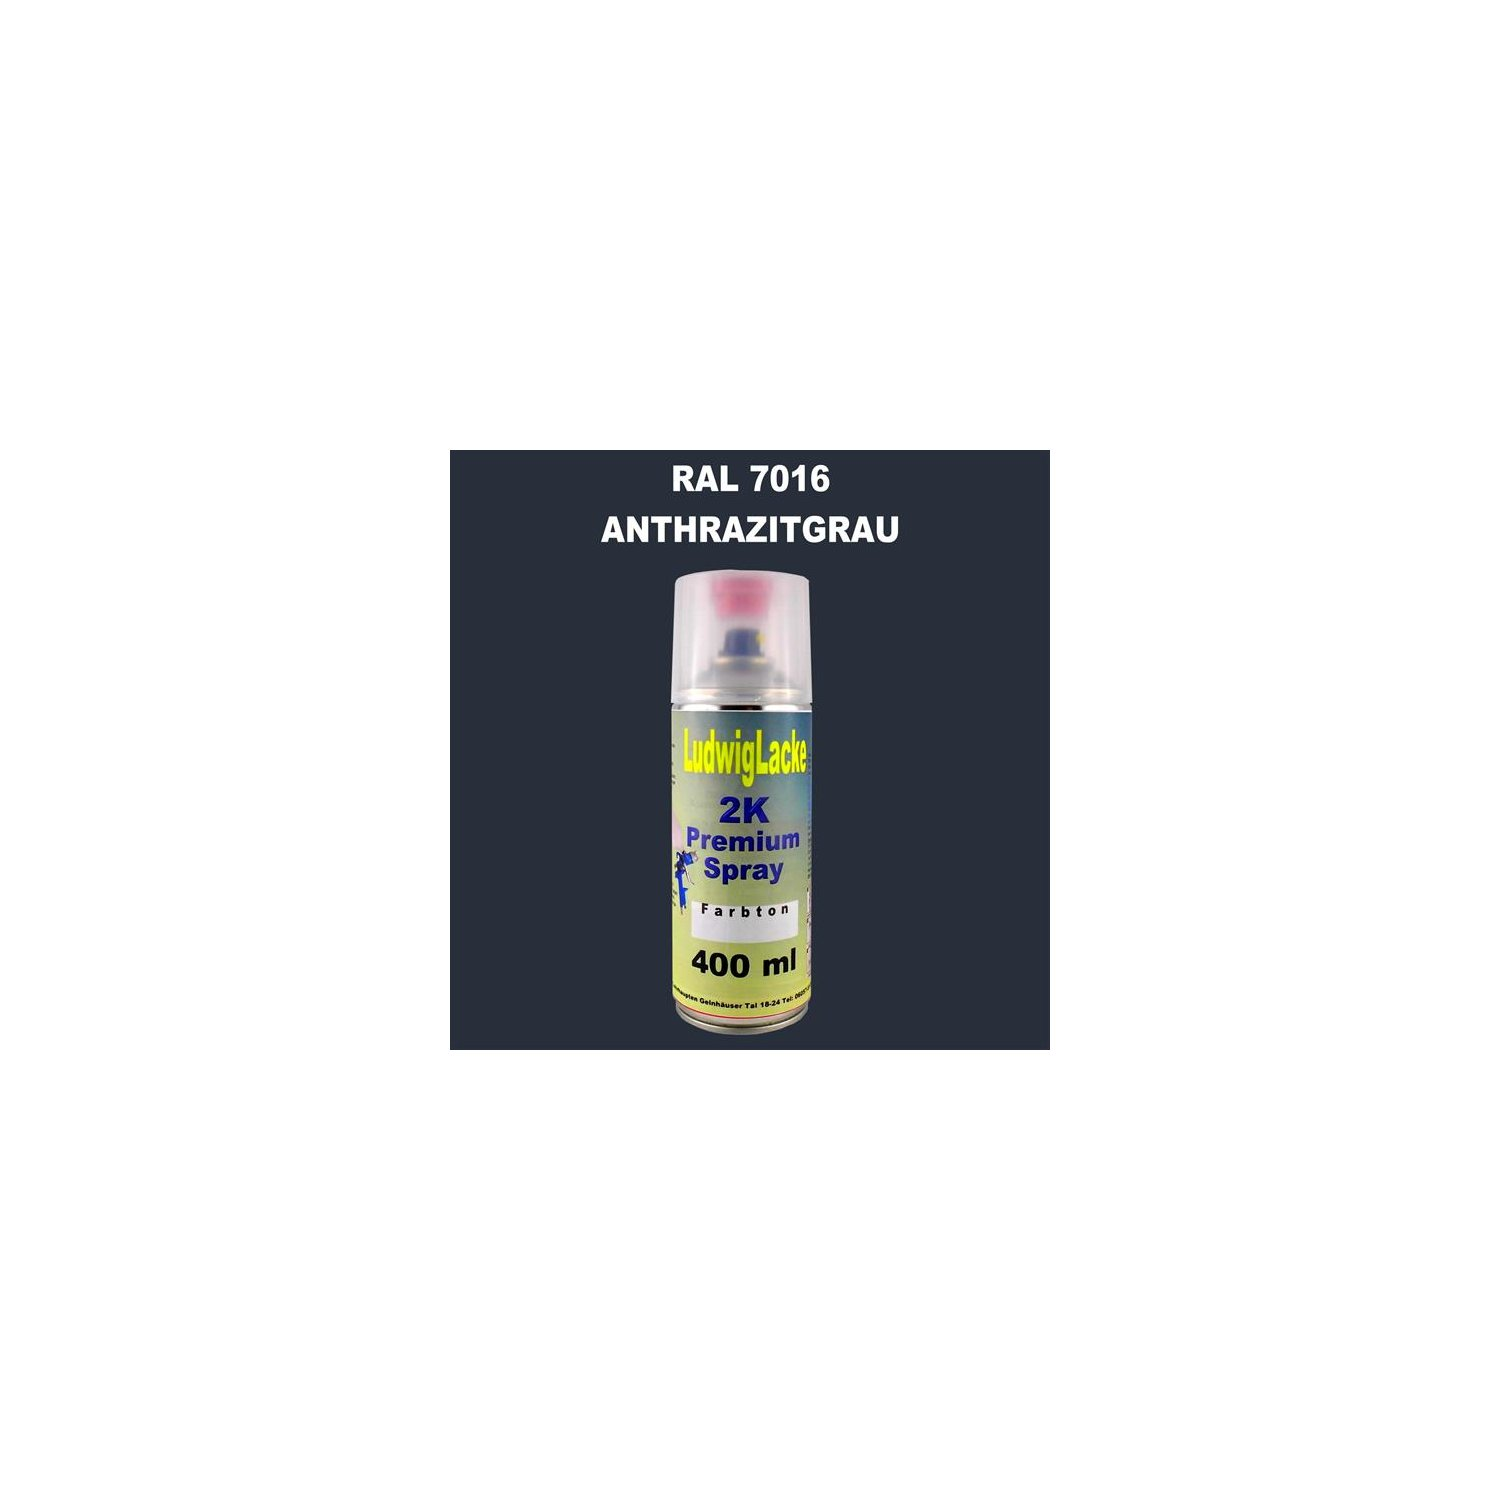 ral 7016 anthrazitgrau 2k premium spray 400ml 15 98. Black Bedroom Furniture Sets. Home Design Ideas